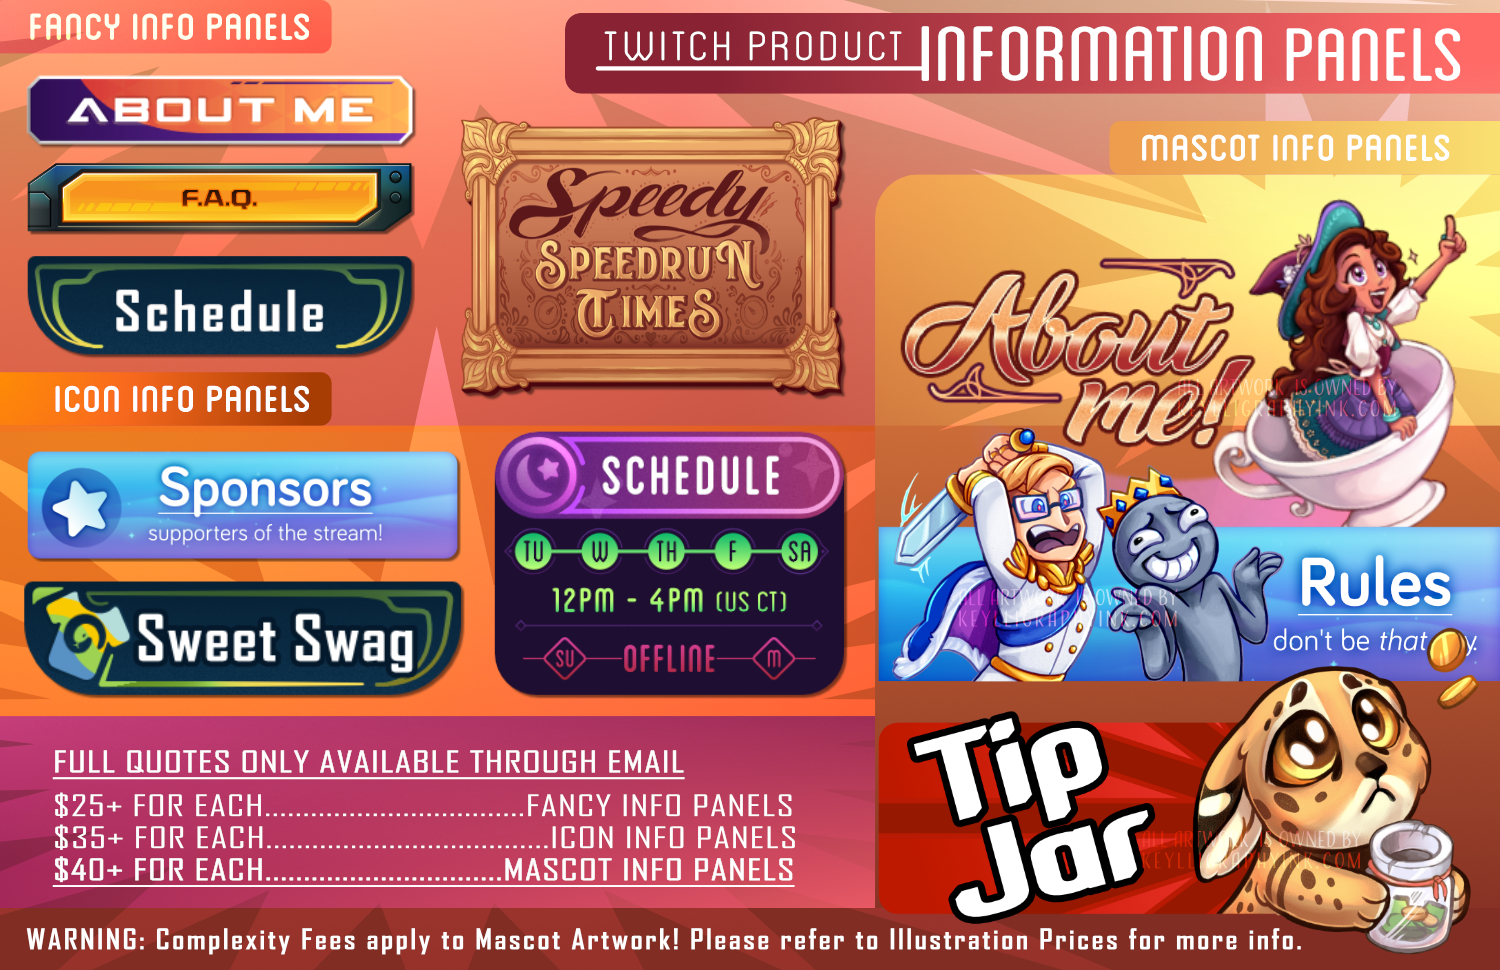 ads_Sale_Twitch_Panels_2019.jpg